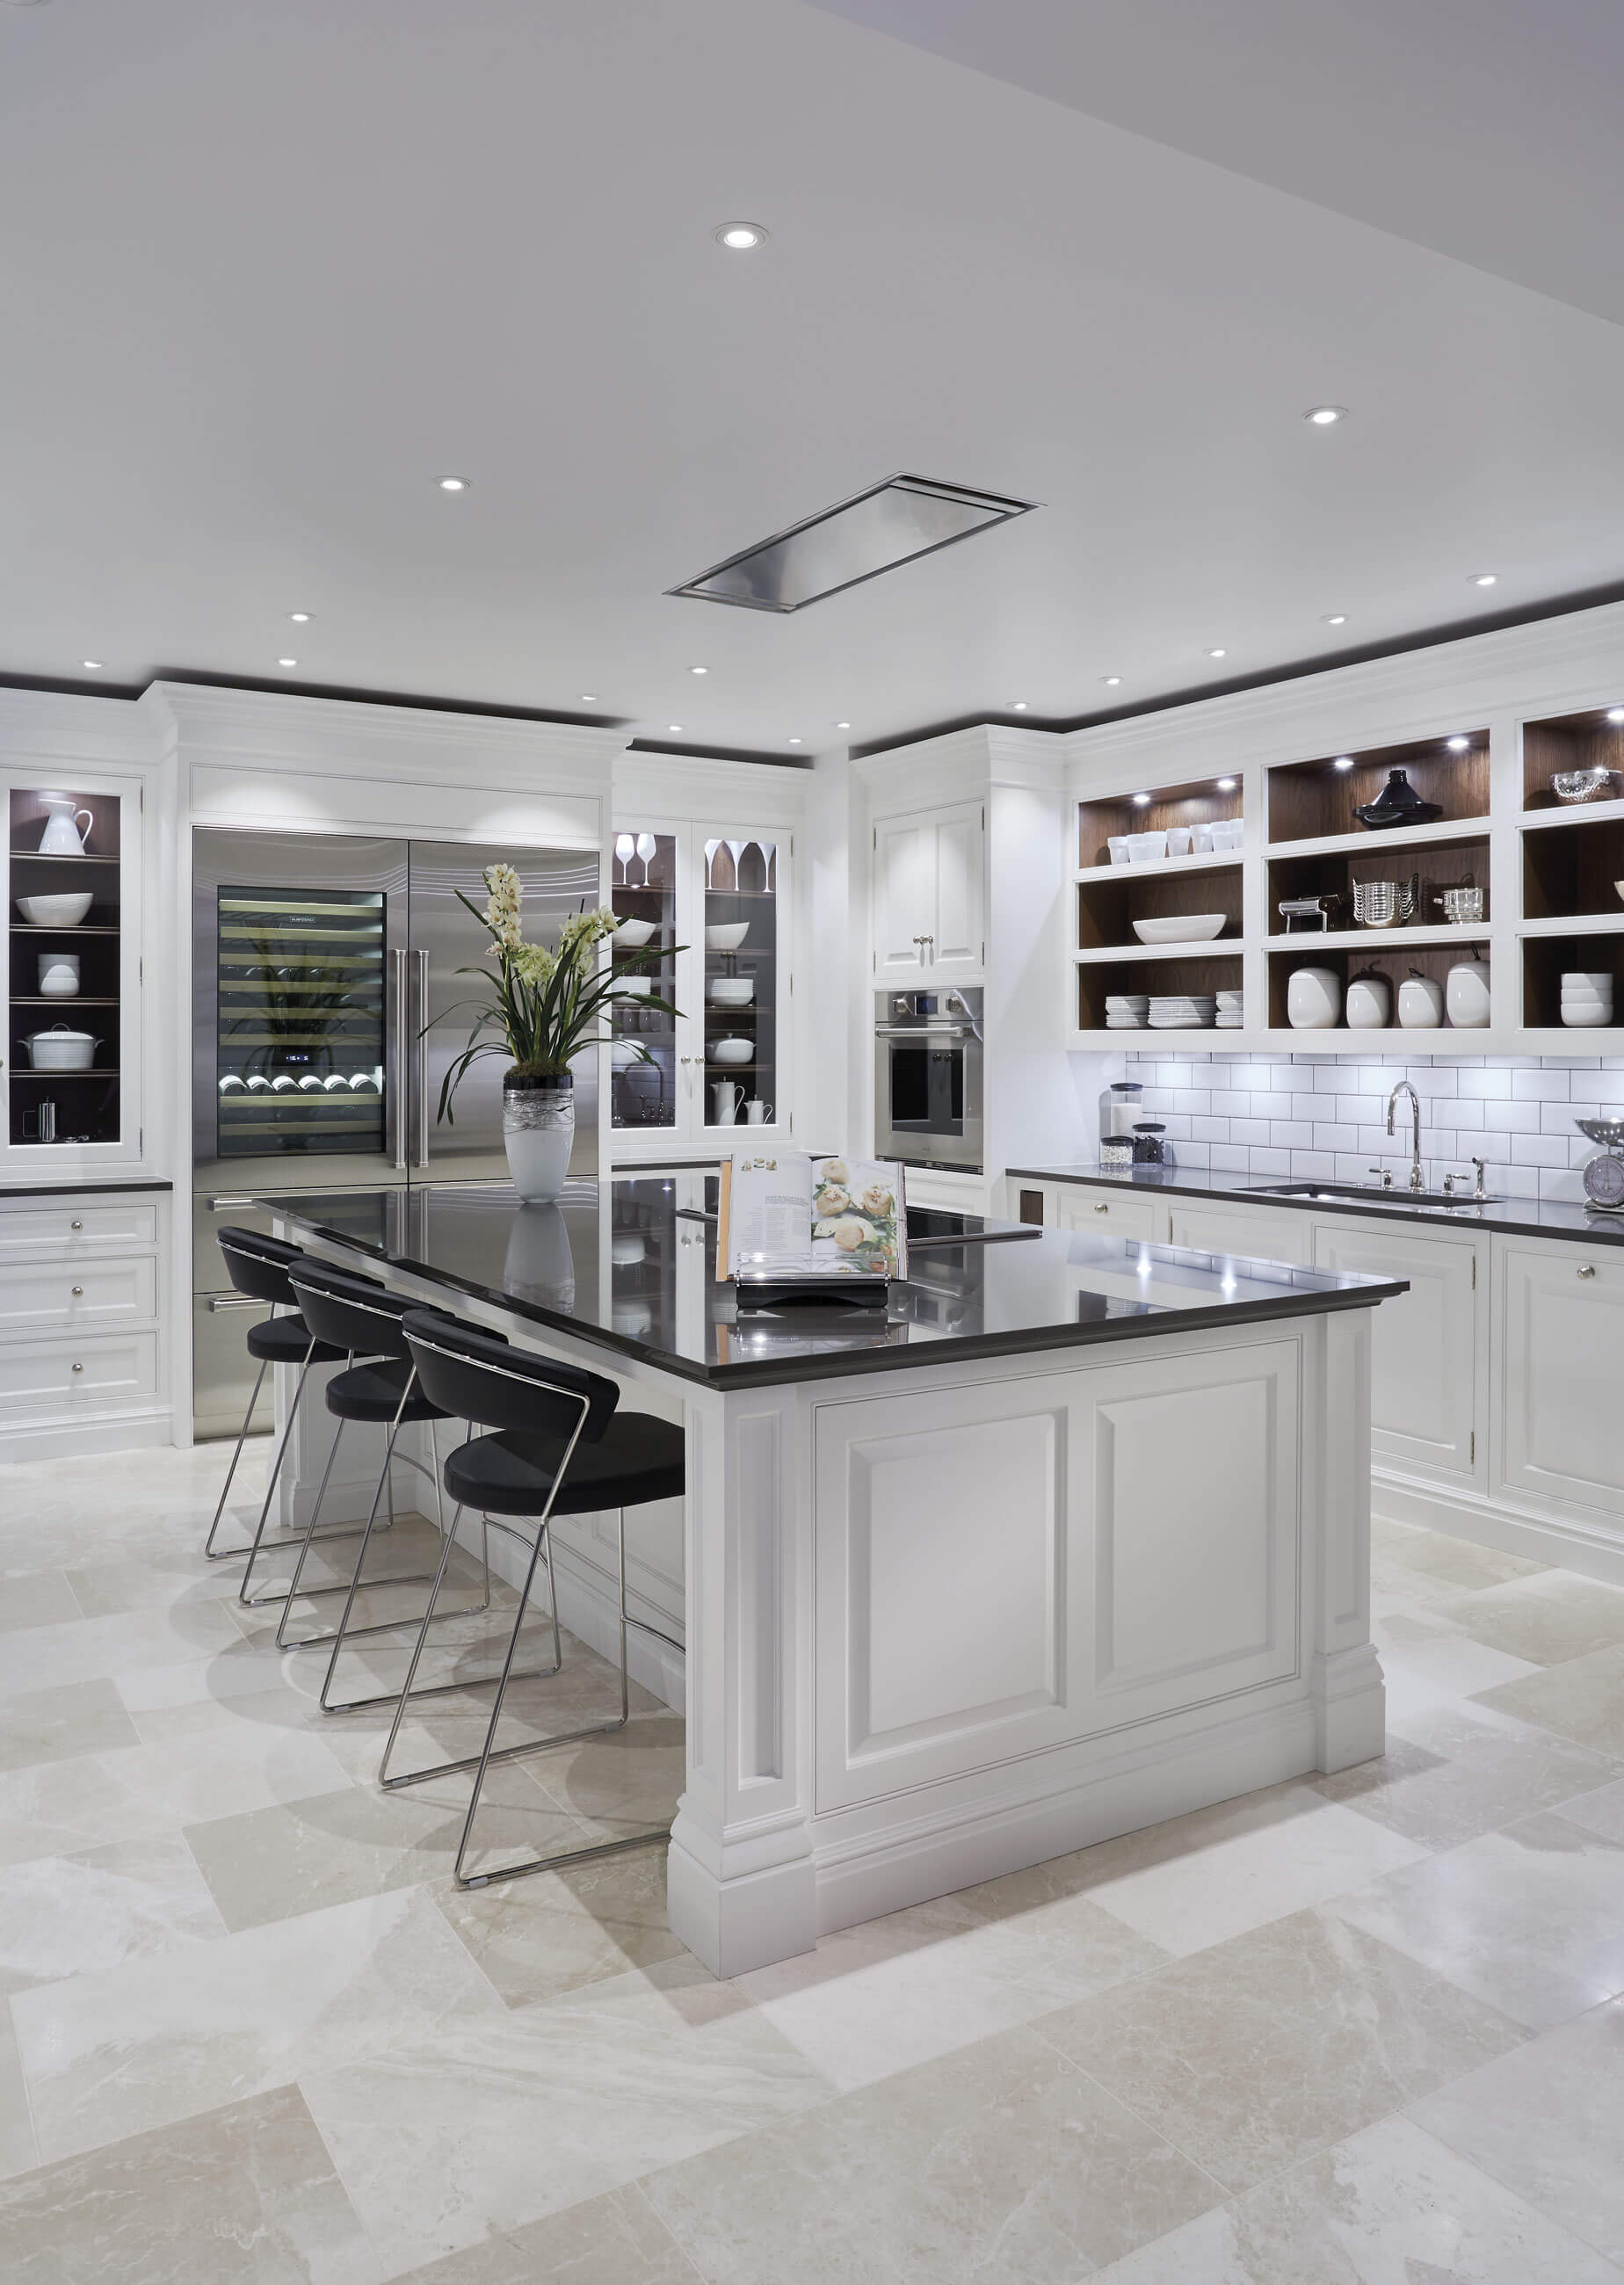 kitchen design uk luxury grand kitchen tom howley 4599